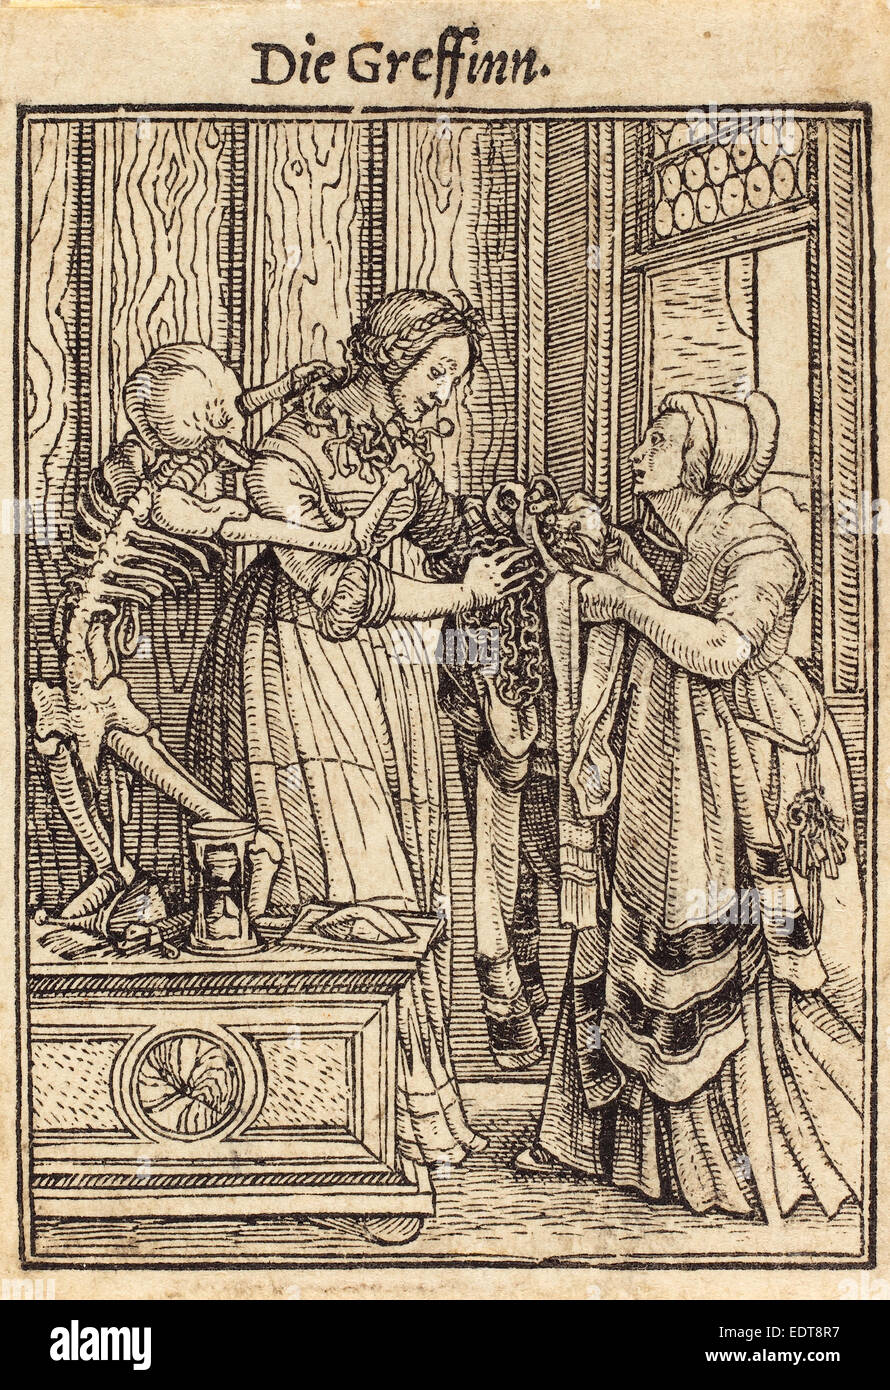 Hans Holbein the Younger (German, 1497-1498 - 1543), Countess, woodcut